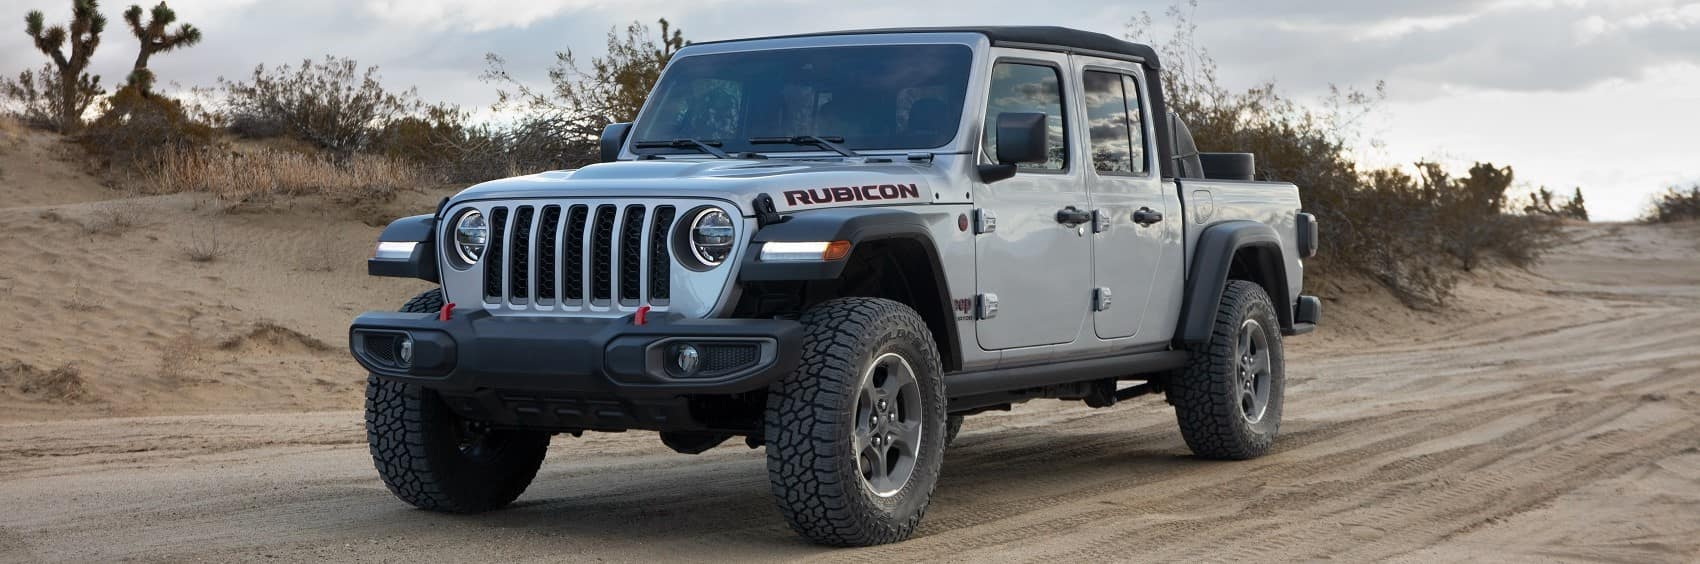 2021 Jeep Gladiator Rubicon off road banner